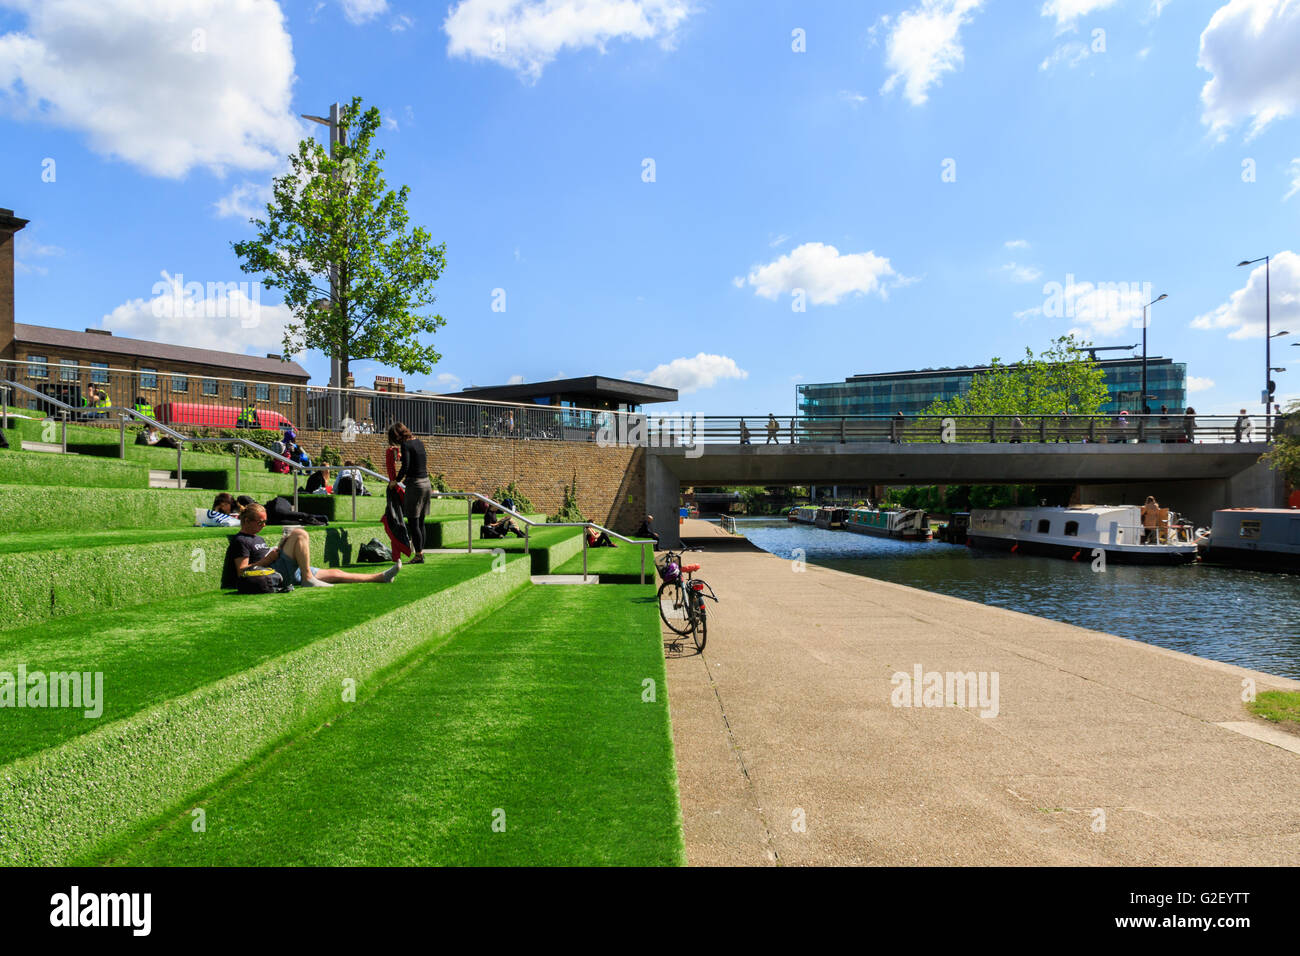 London, UK - May 23, 2017 - People relax and enjoy sunshine on the terrace at Granary Square, King's Cross - Stock Image